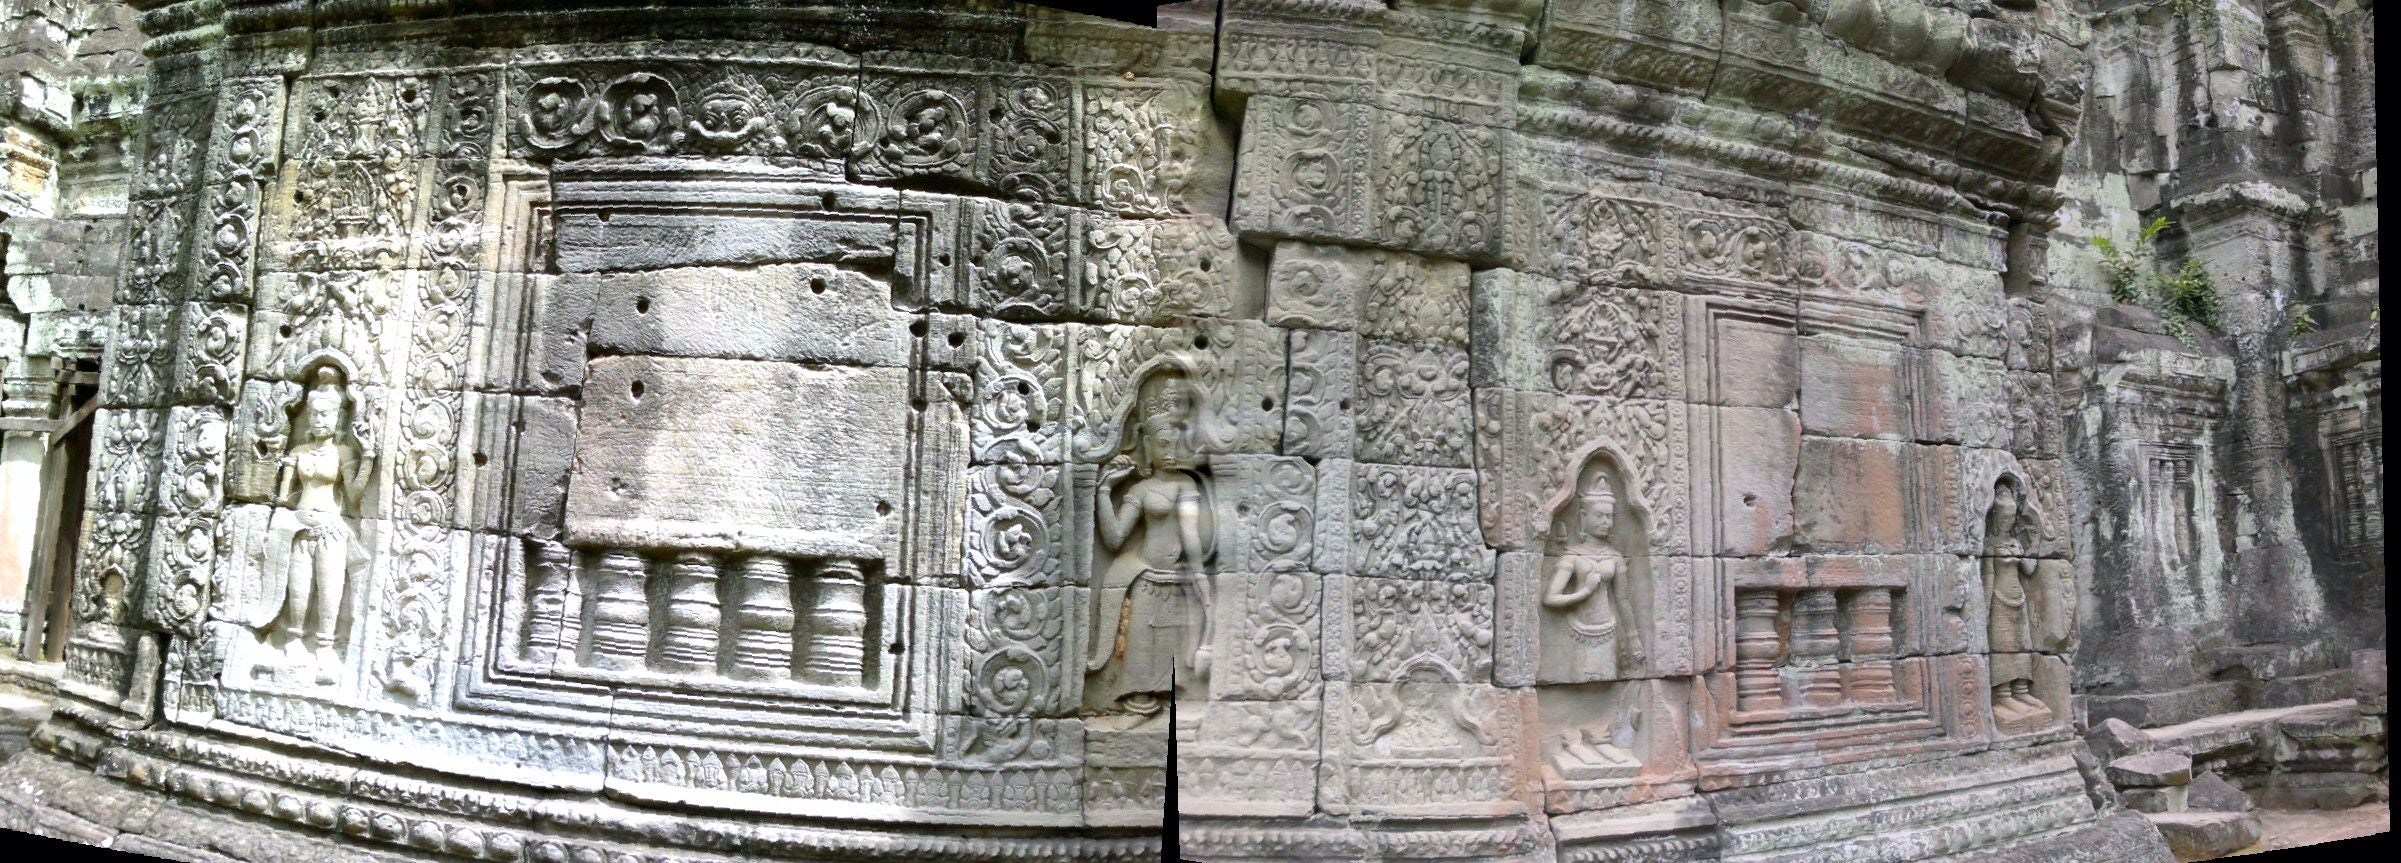 Relieve (escultura) en Templo Baphuon